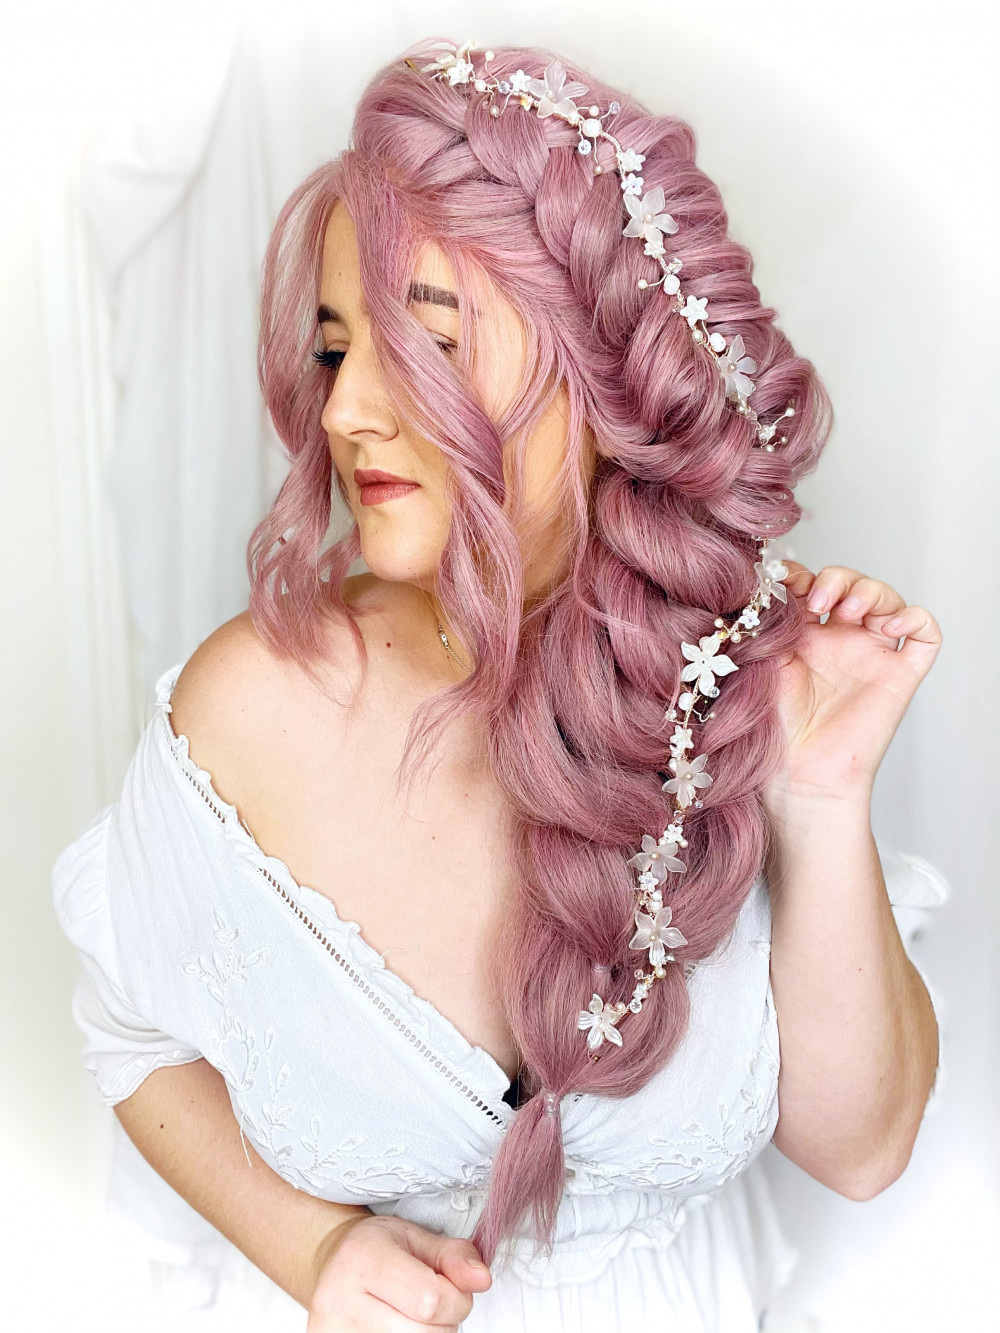 - Make Me Bridal Artist: Parisiumhair. #boho #hairvine #flowersinherhair #bridalhairstylist #hairstyling #photoshoot #styledshoot #pink #braid #plait